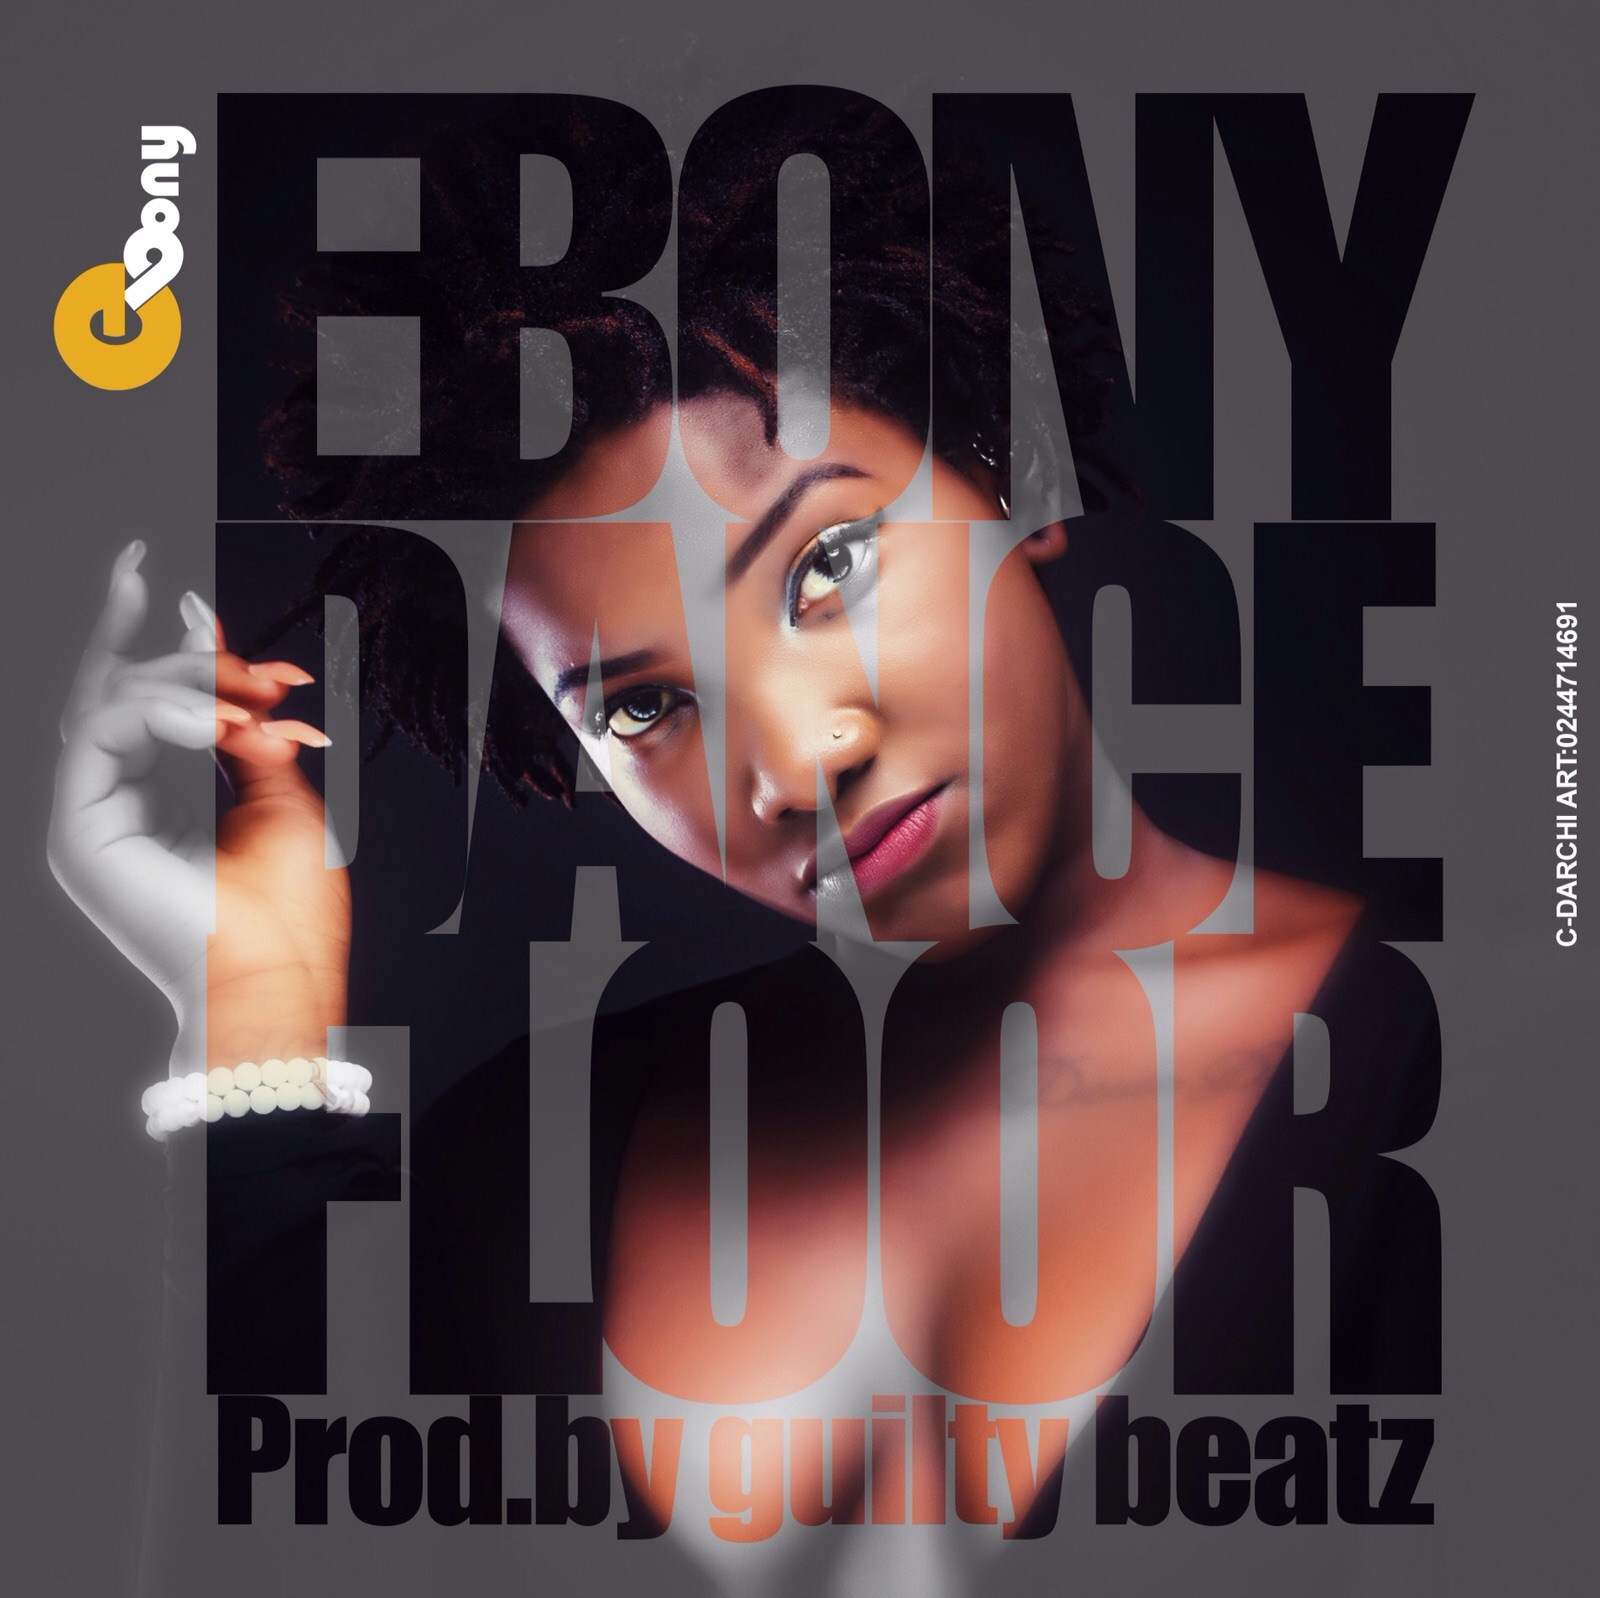 Ebony dancefloor prod by guilty beatz for 1234 get on the dance floor songs download